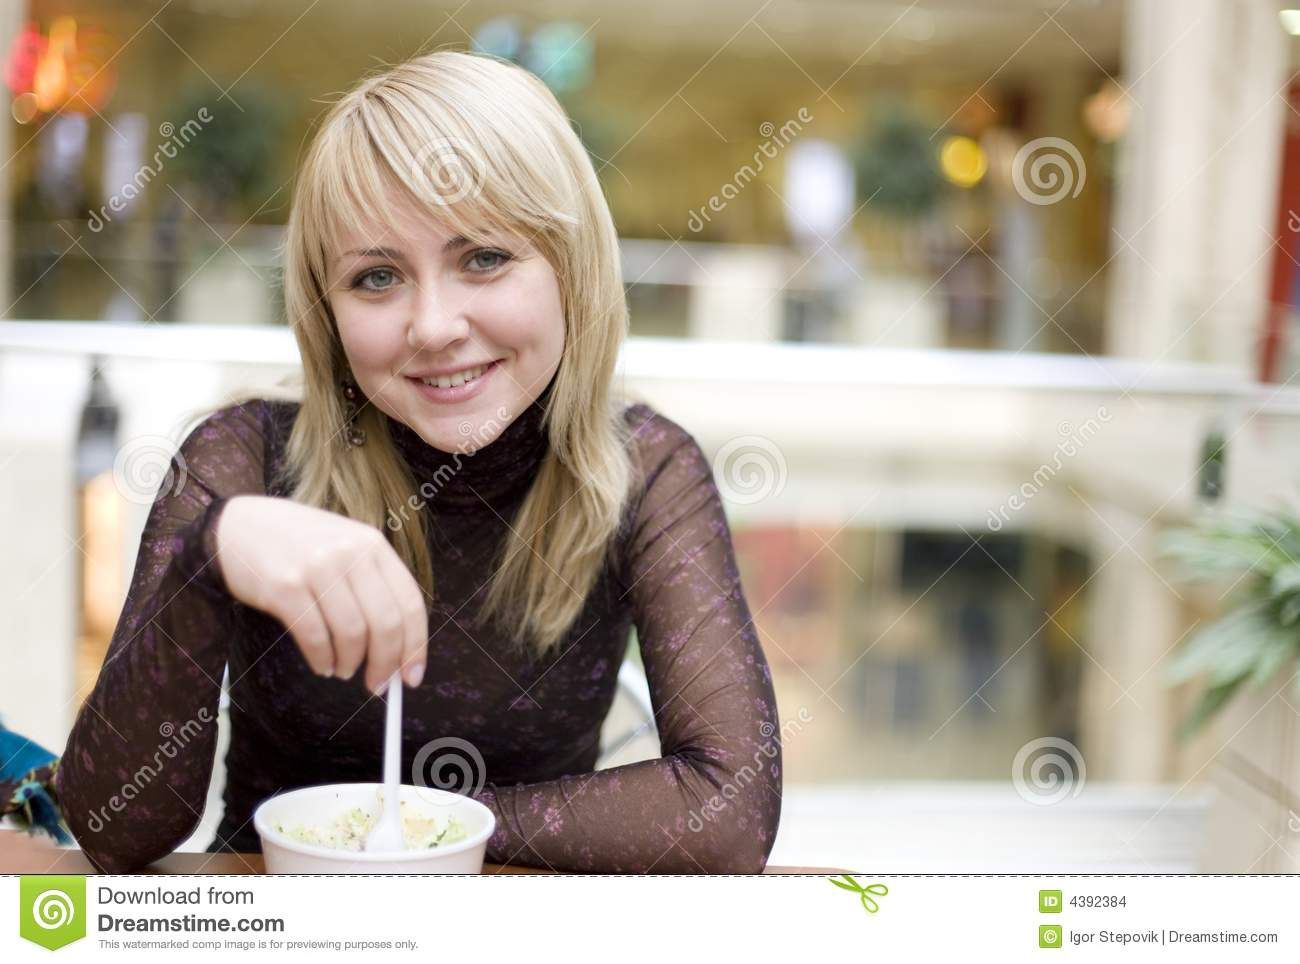 Eating blond girl with spoon in restaurant